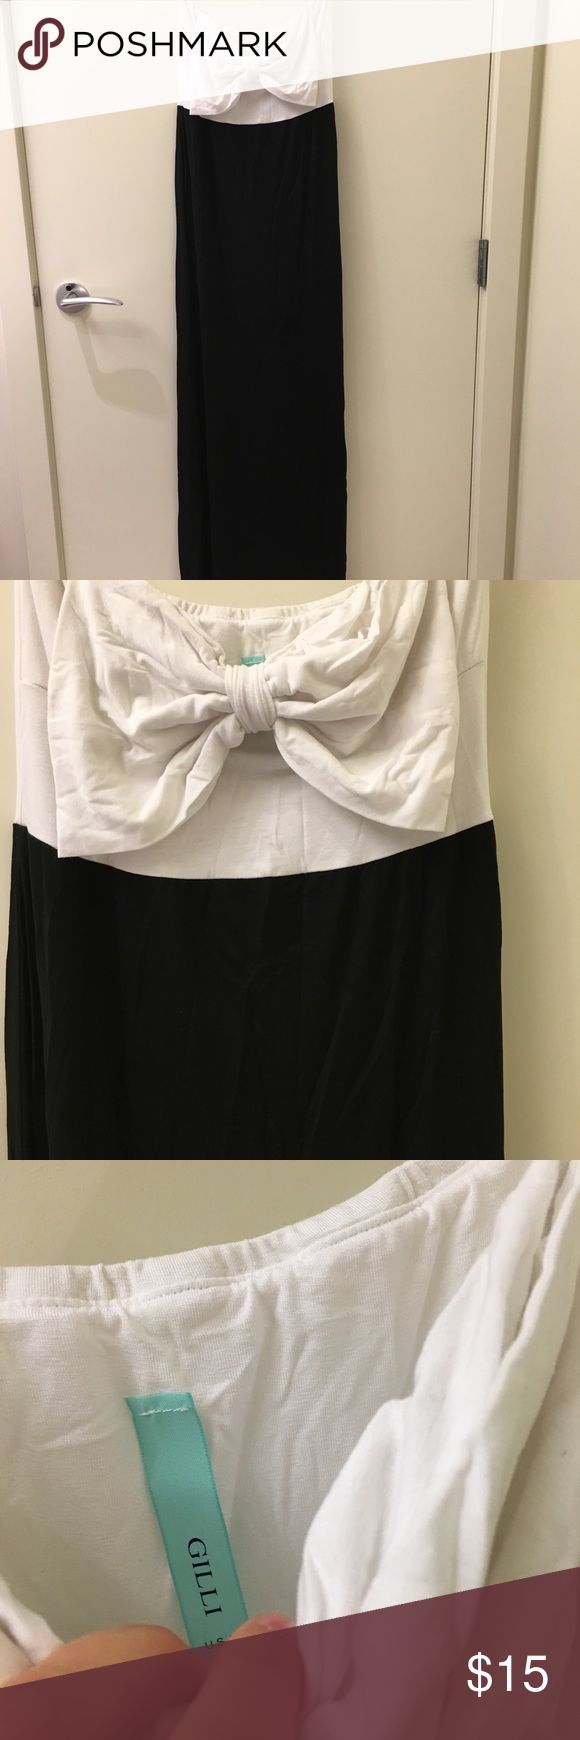 Black and white maxi dress - BRAND NEW Brand new black and white maxi dress with a bow accent. Dress is strapless and brand new never been worn. Gilli Dresses Maxi